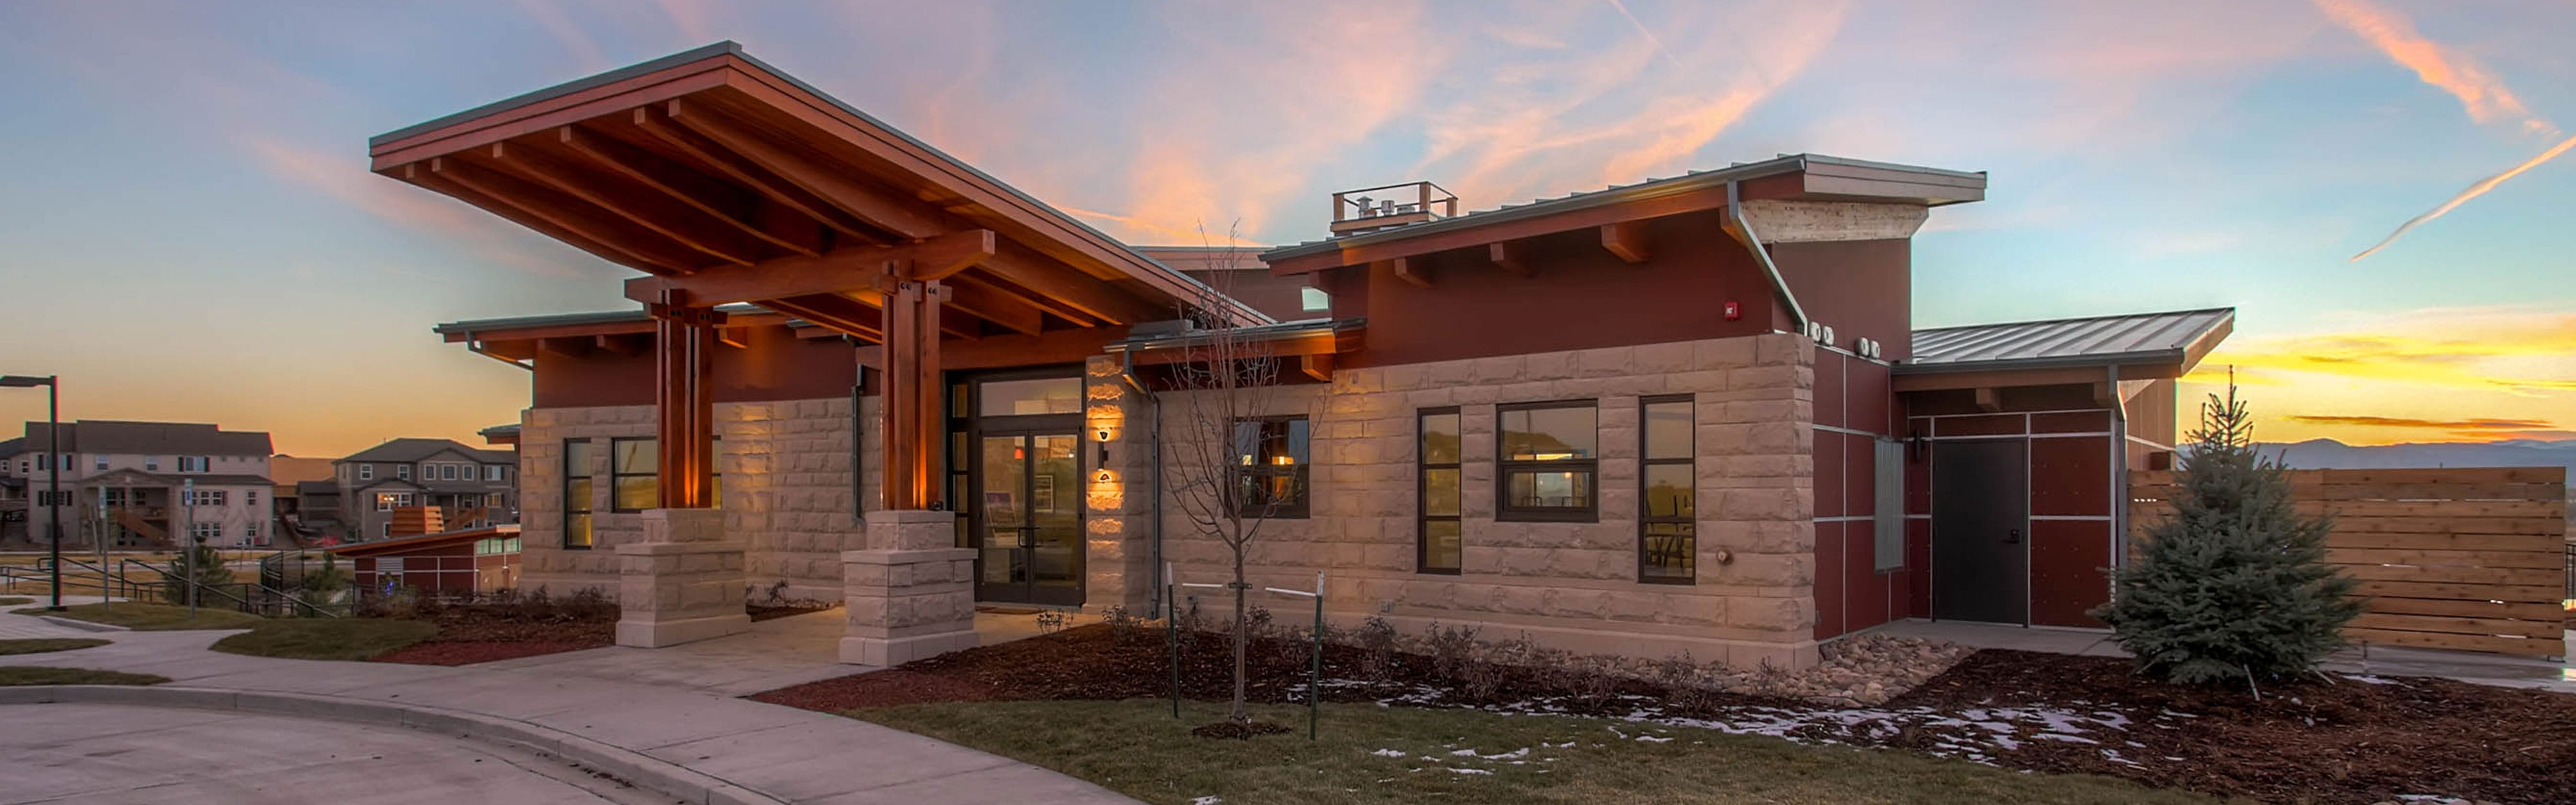 Colorado Architects that specialize in Club House Architecture